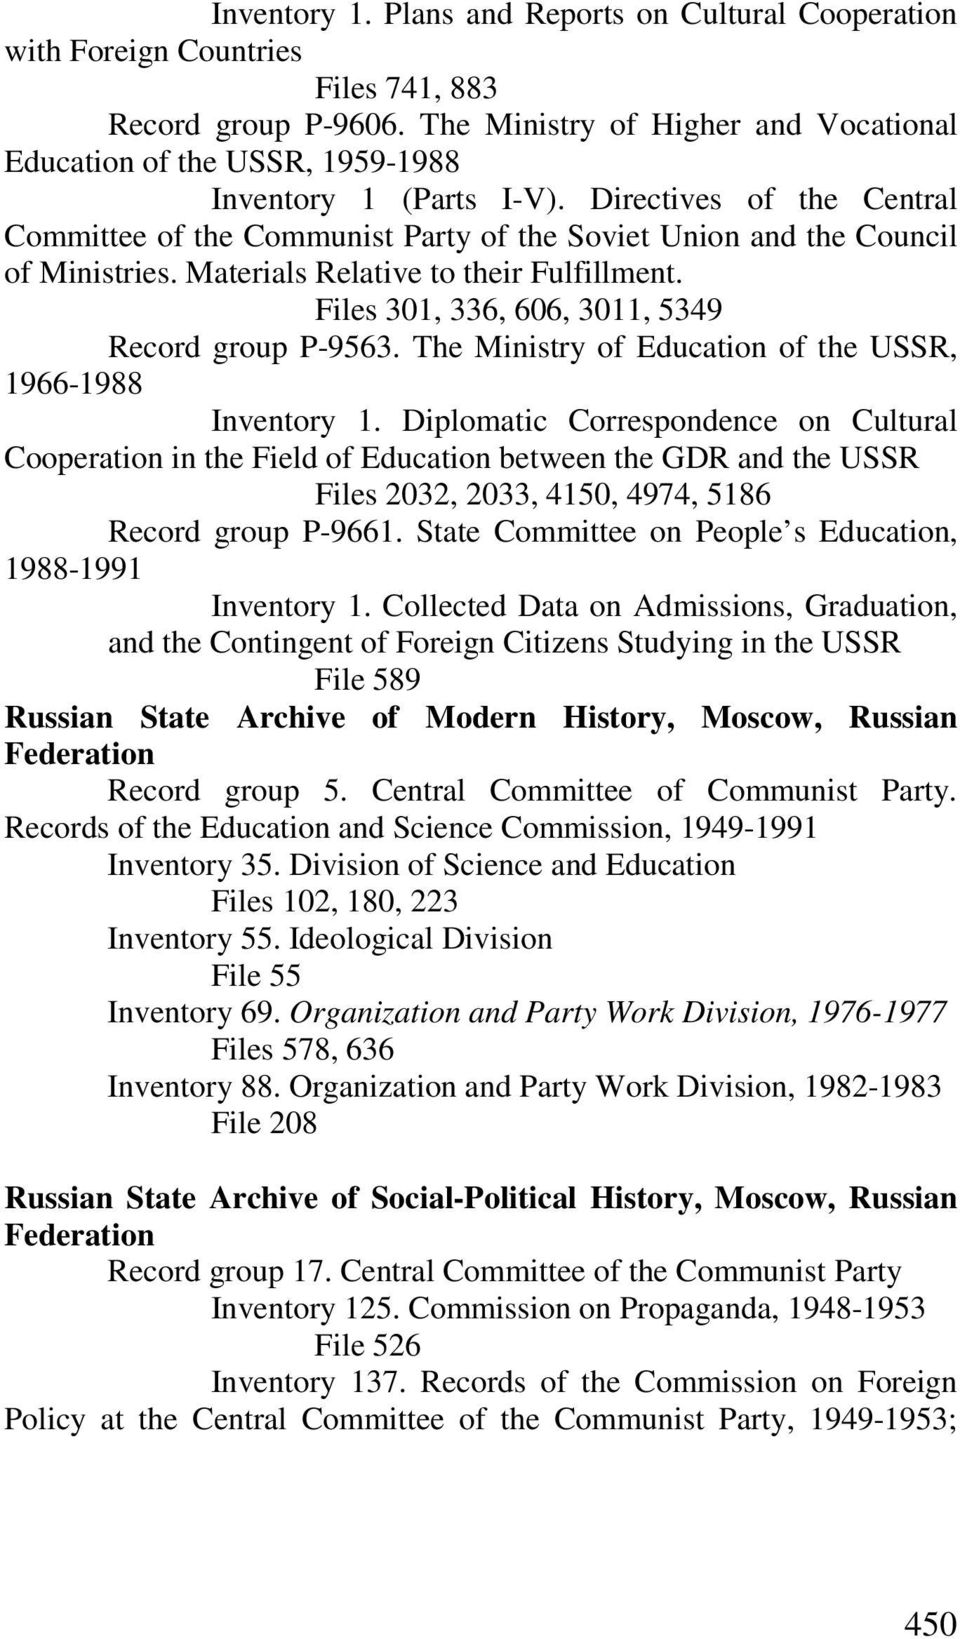 Directives of the Central Committee of the Communist Party of the Soviet Union and the Council of Ministries. Materials Relative to their Fulfillment.